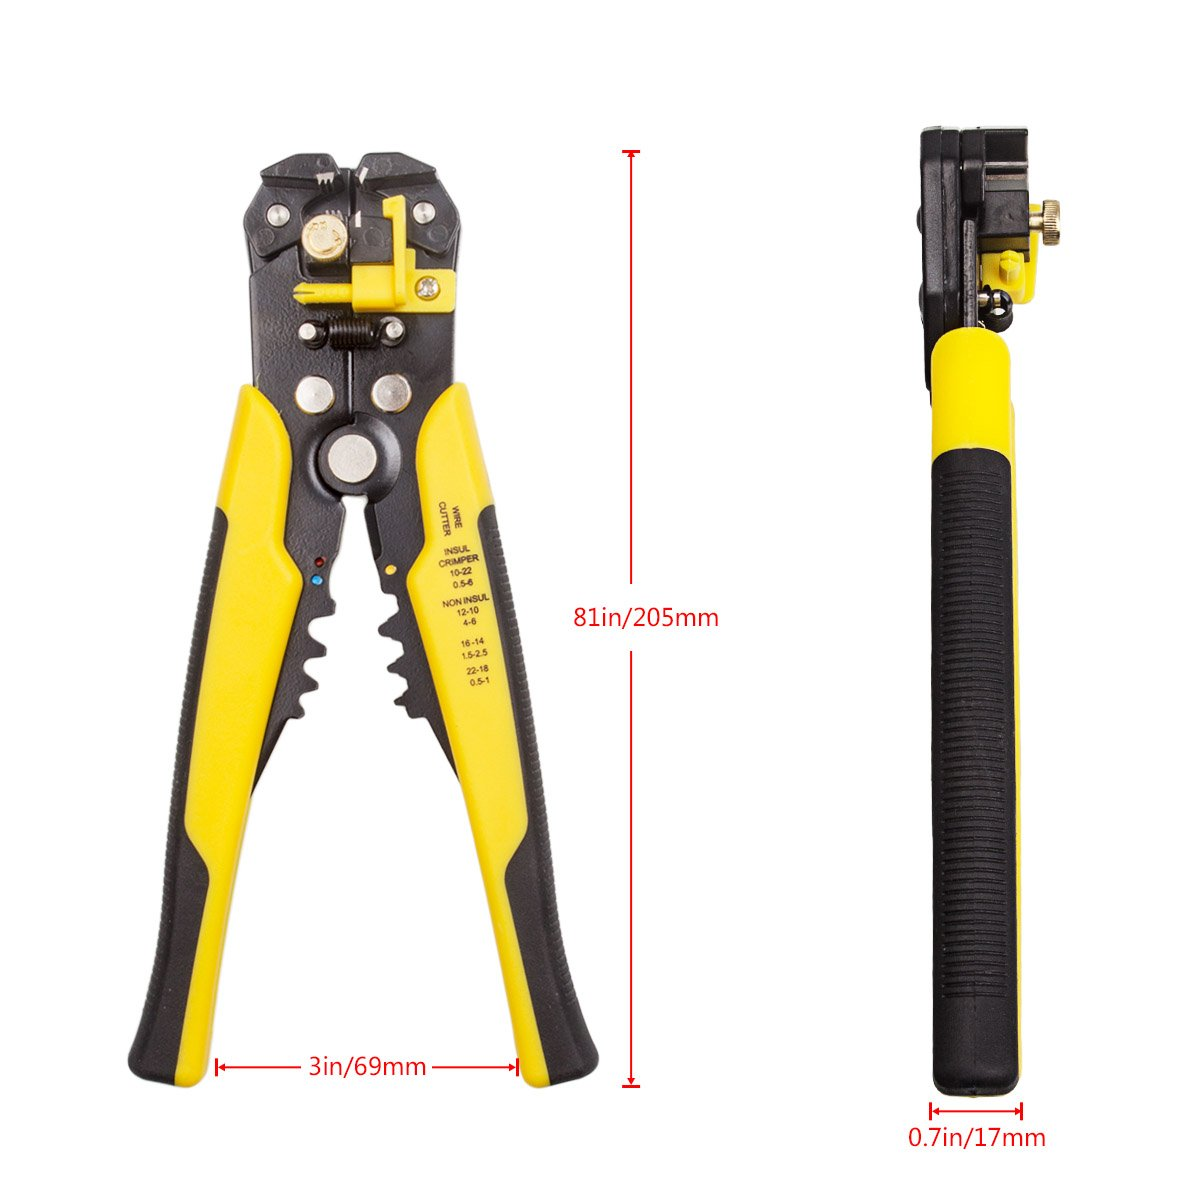 Wire Stripping Tool LANIAKEA Self-Adjusting Multifunctional Wire Stripper//Cutter//Crimper for Industry 10-24 AWG Stranded Wire Cutting